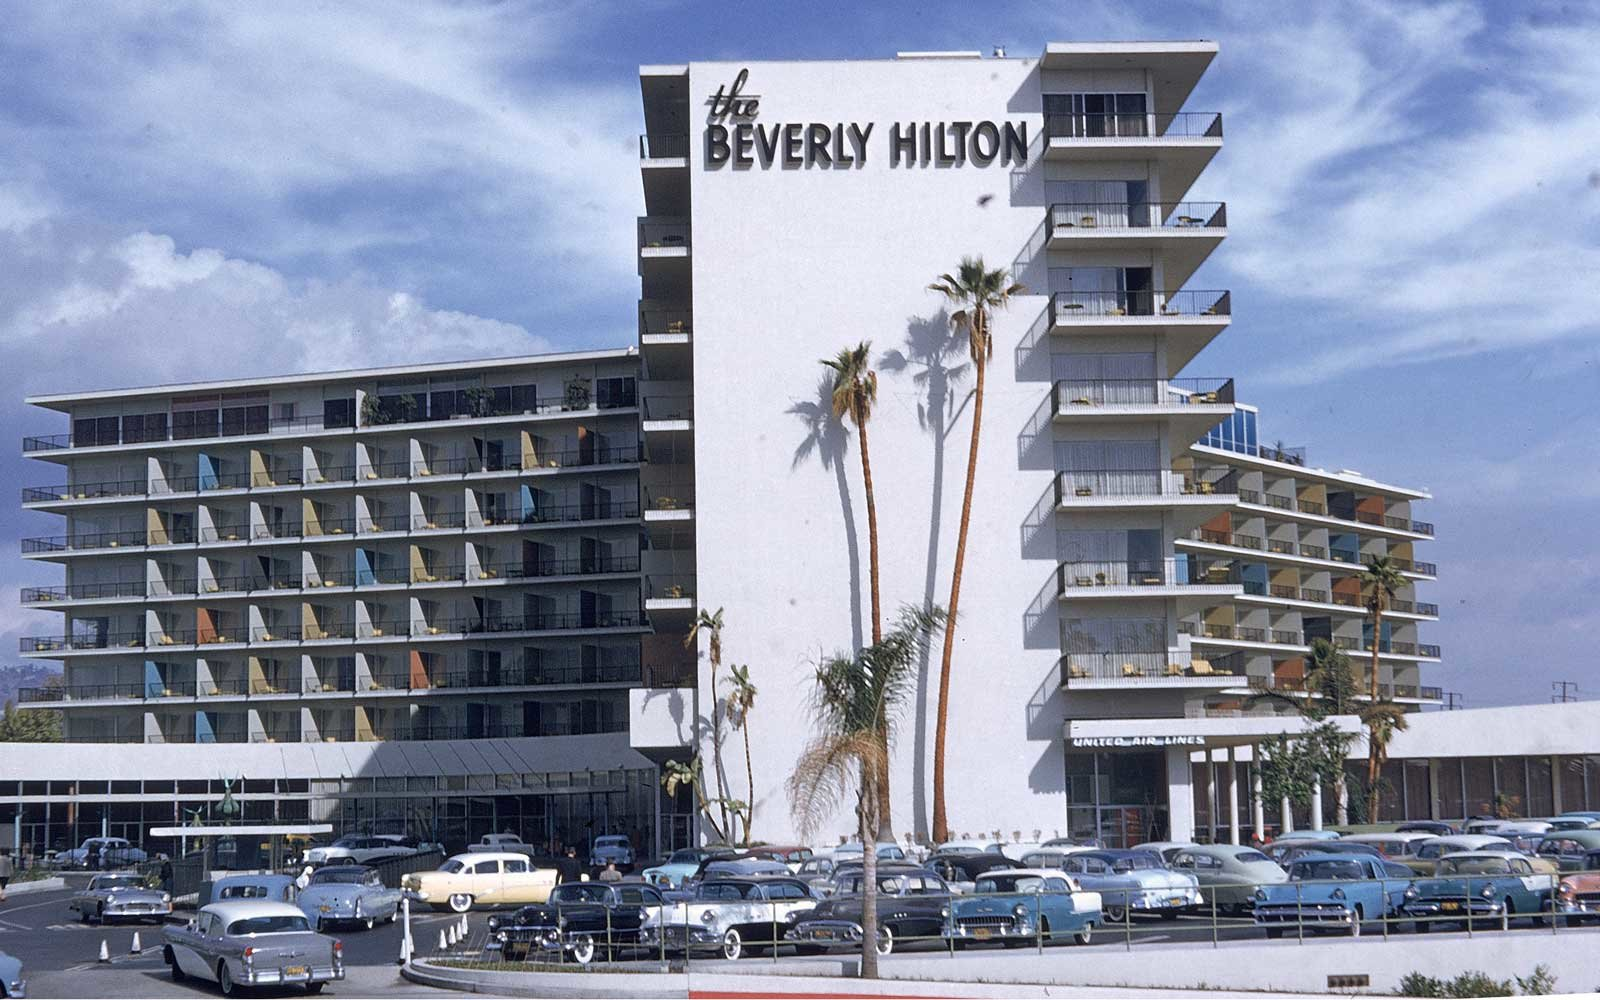 Exterior of the Beverly Hilton hotel in the 1950s